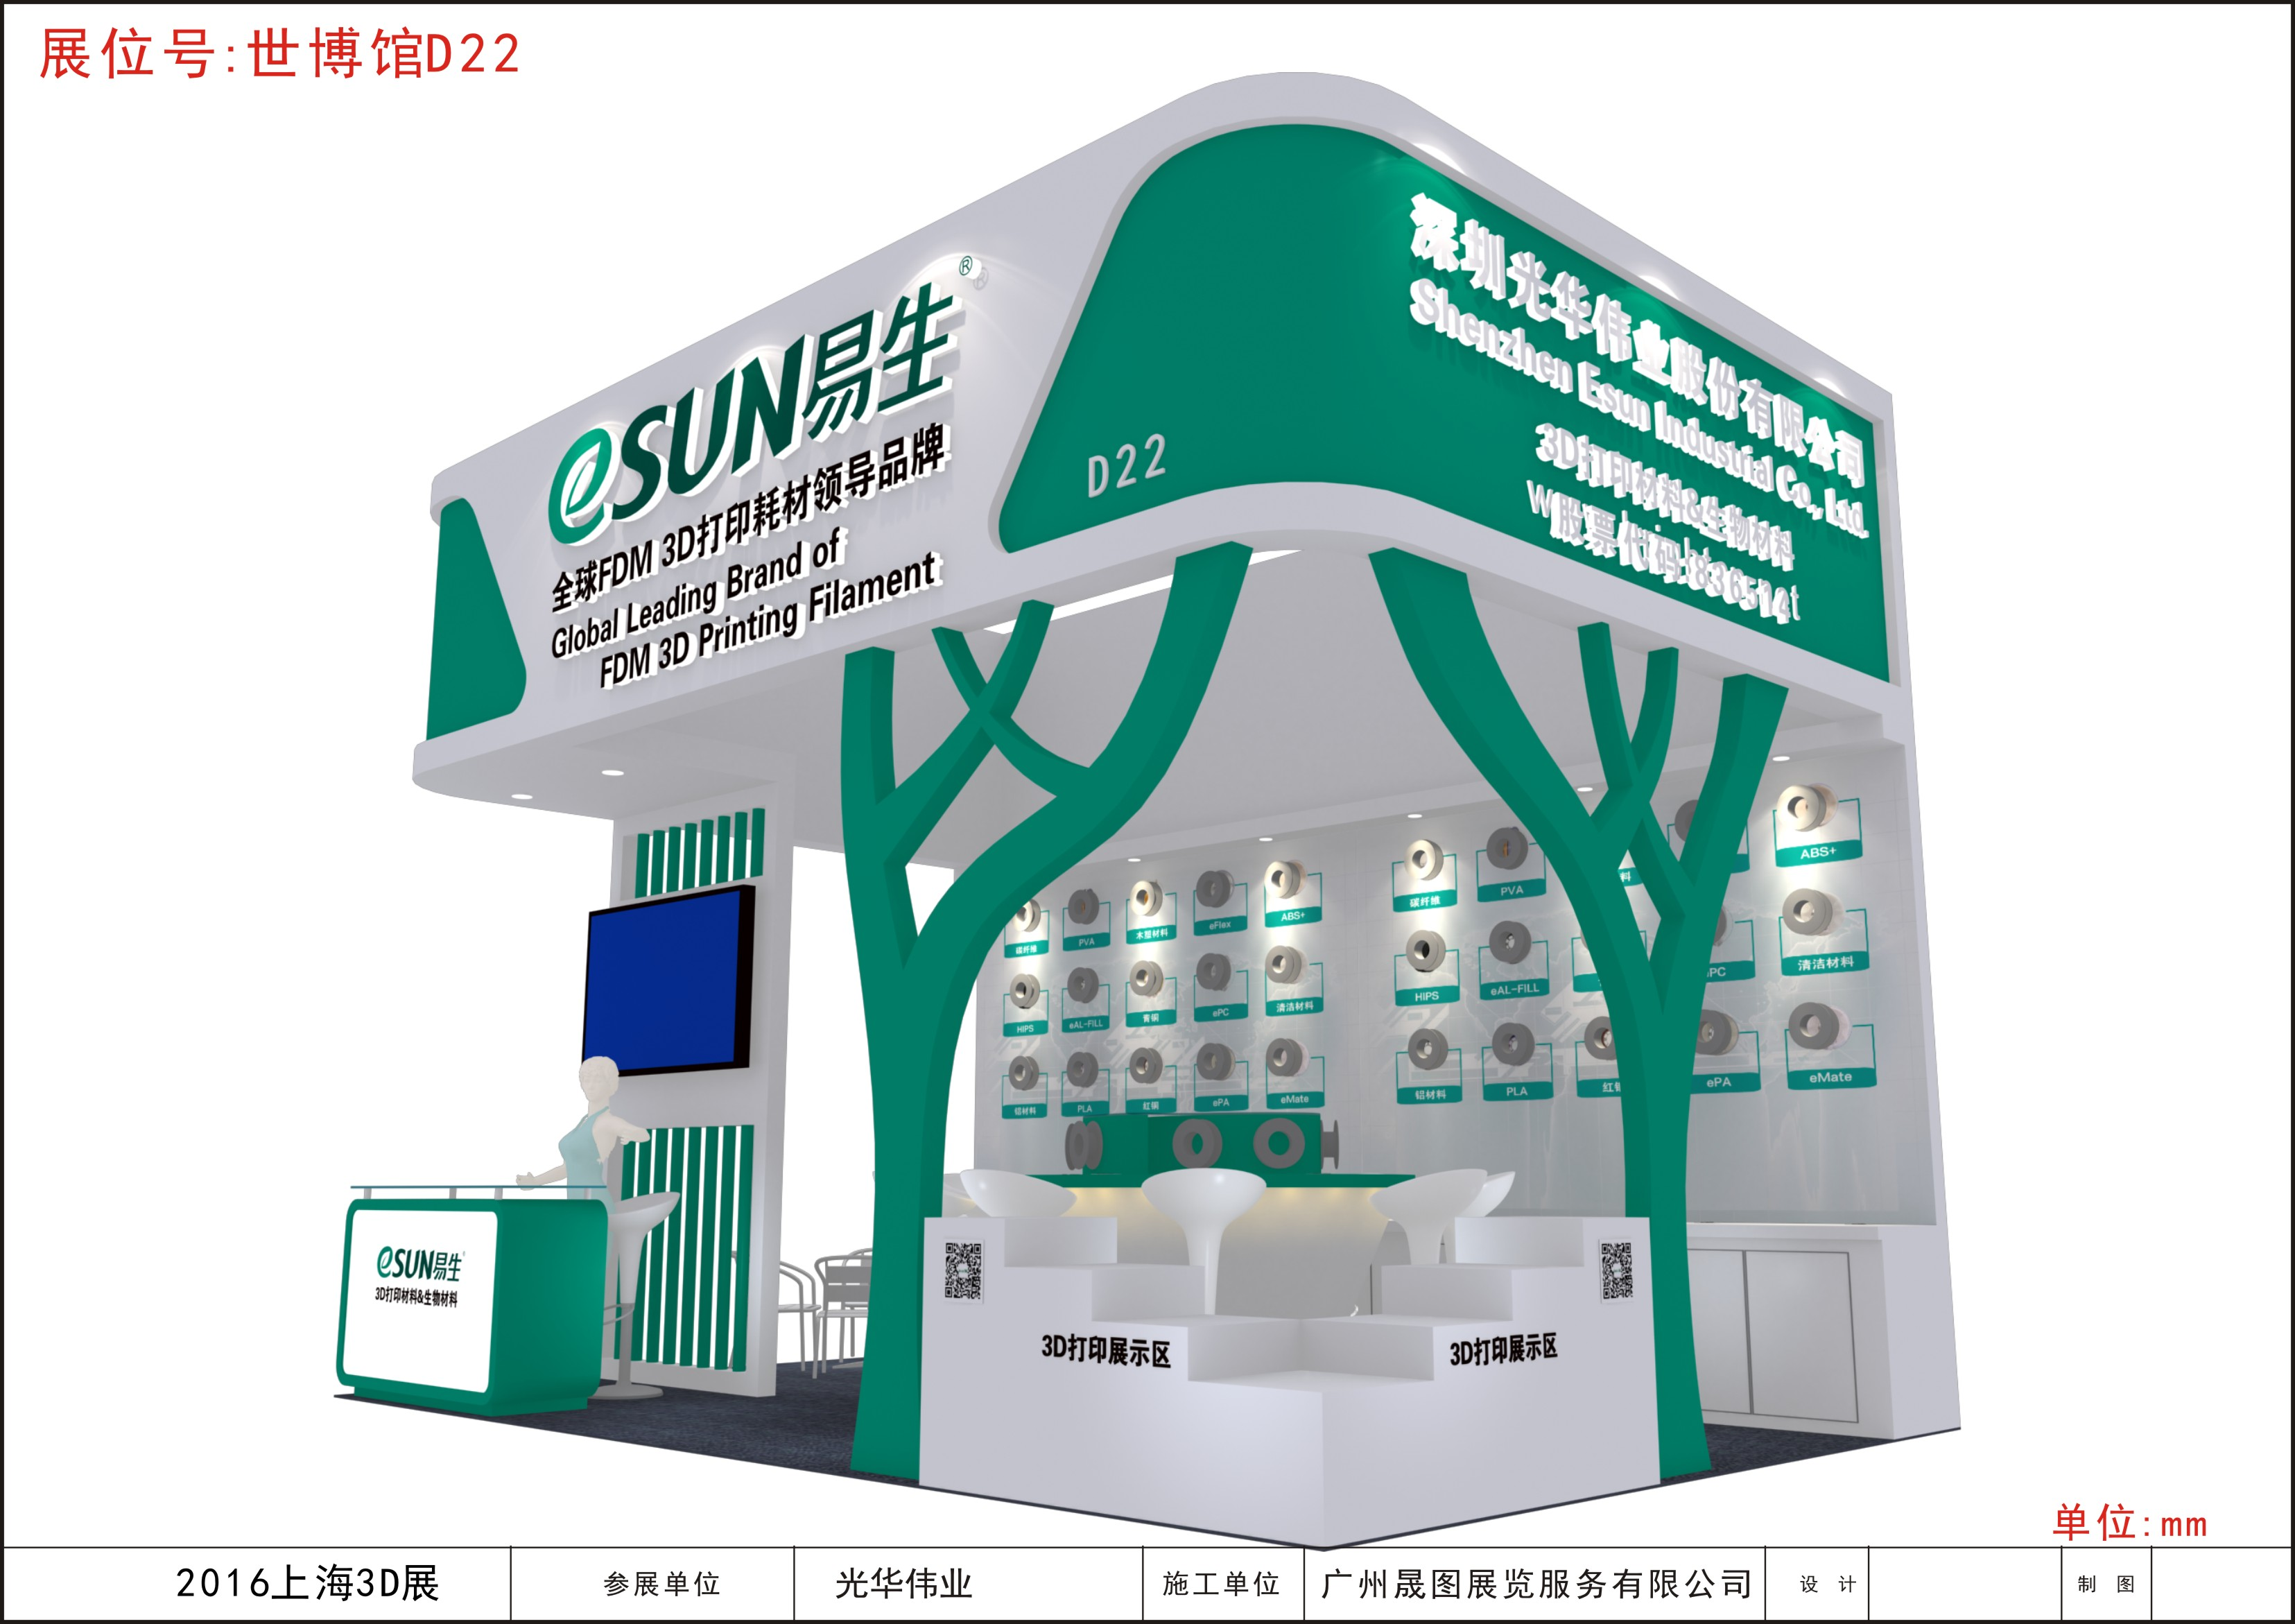 Meet us at 2016 Inside 3D Printing Conference & Expo in Shanghai